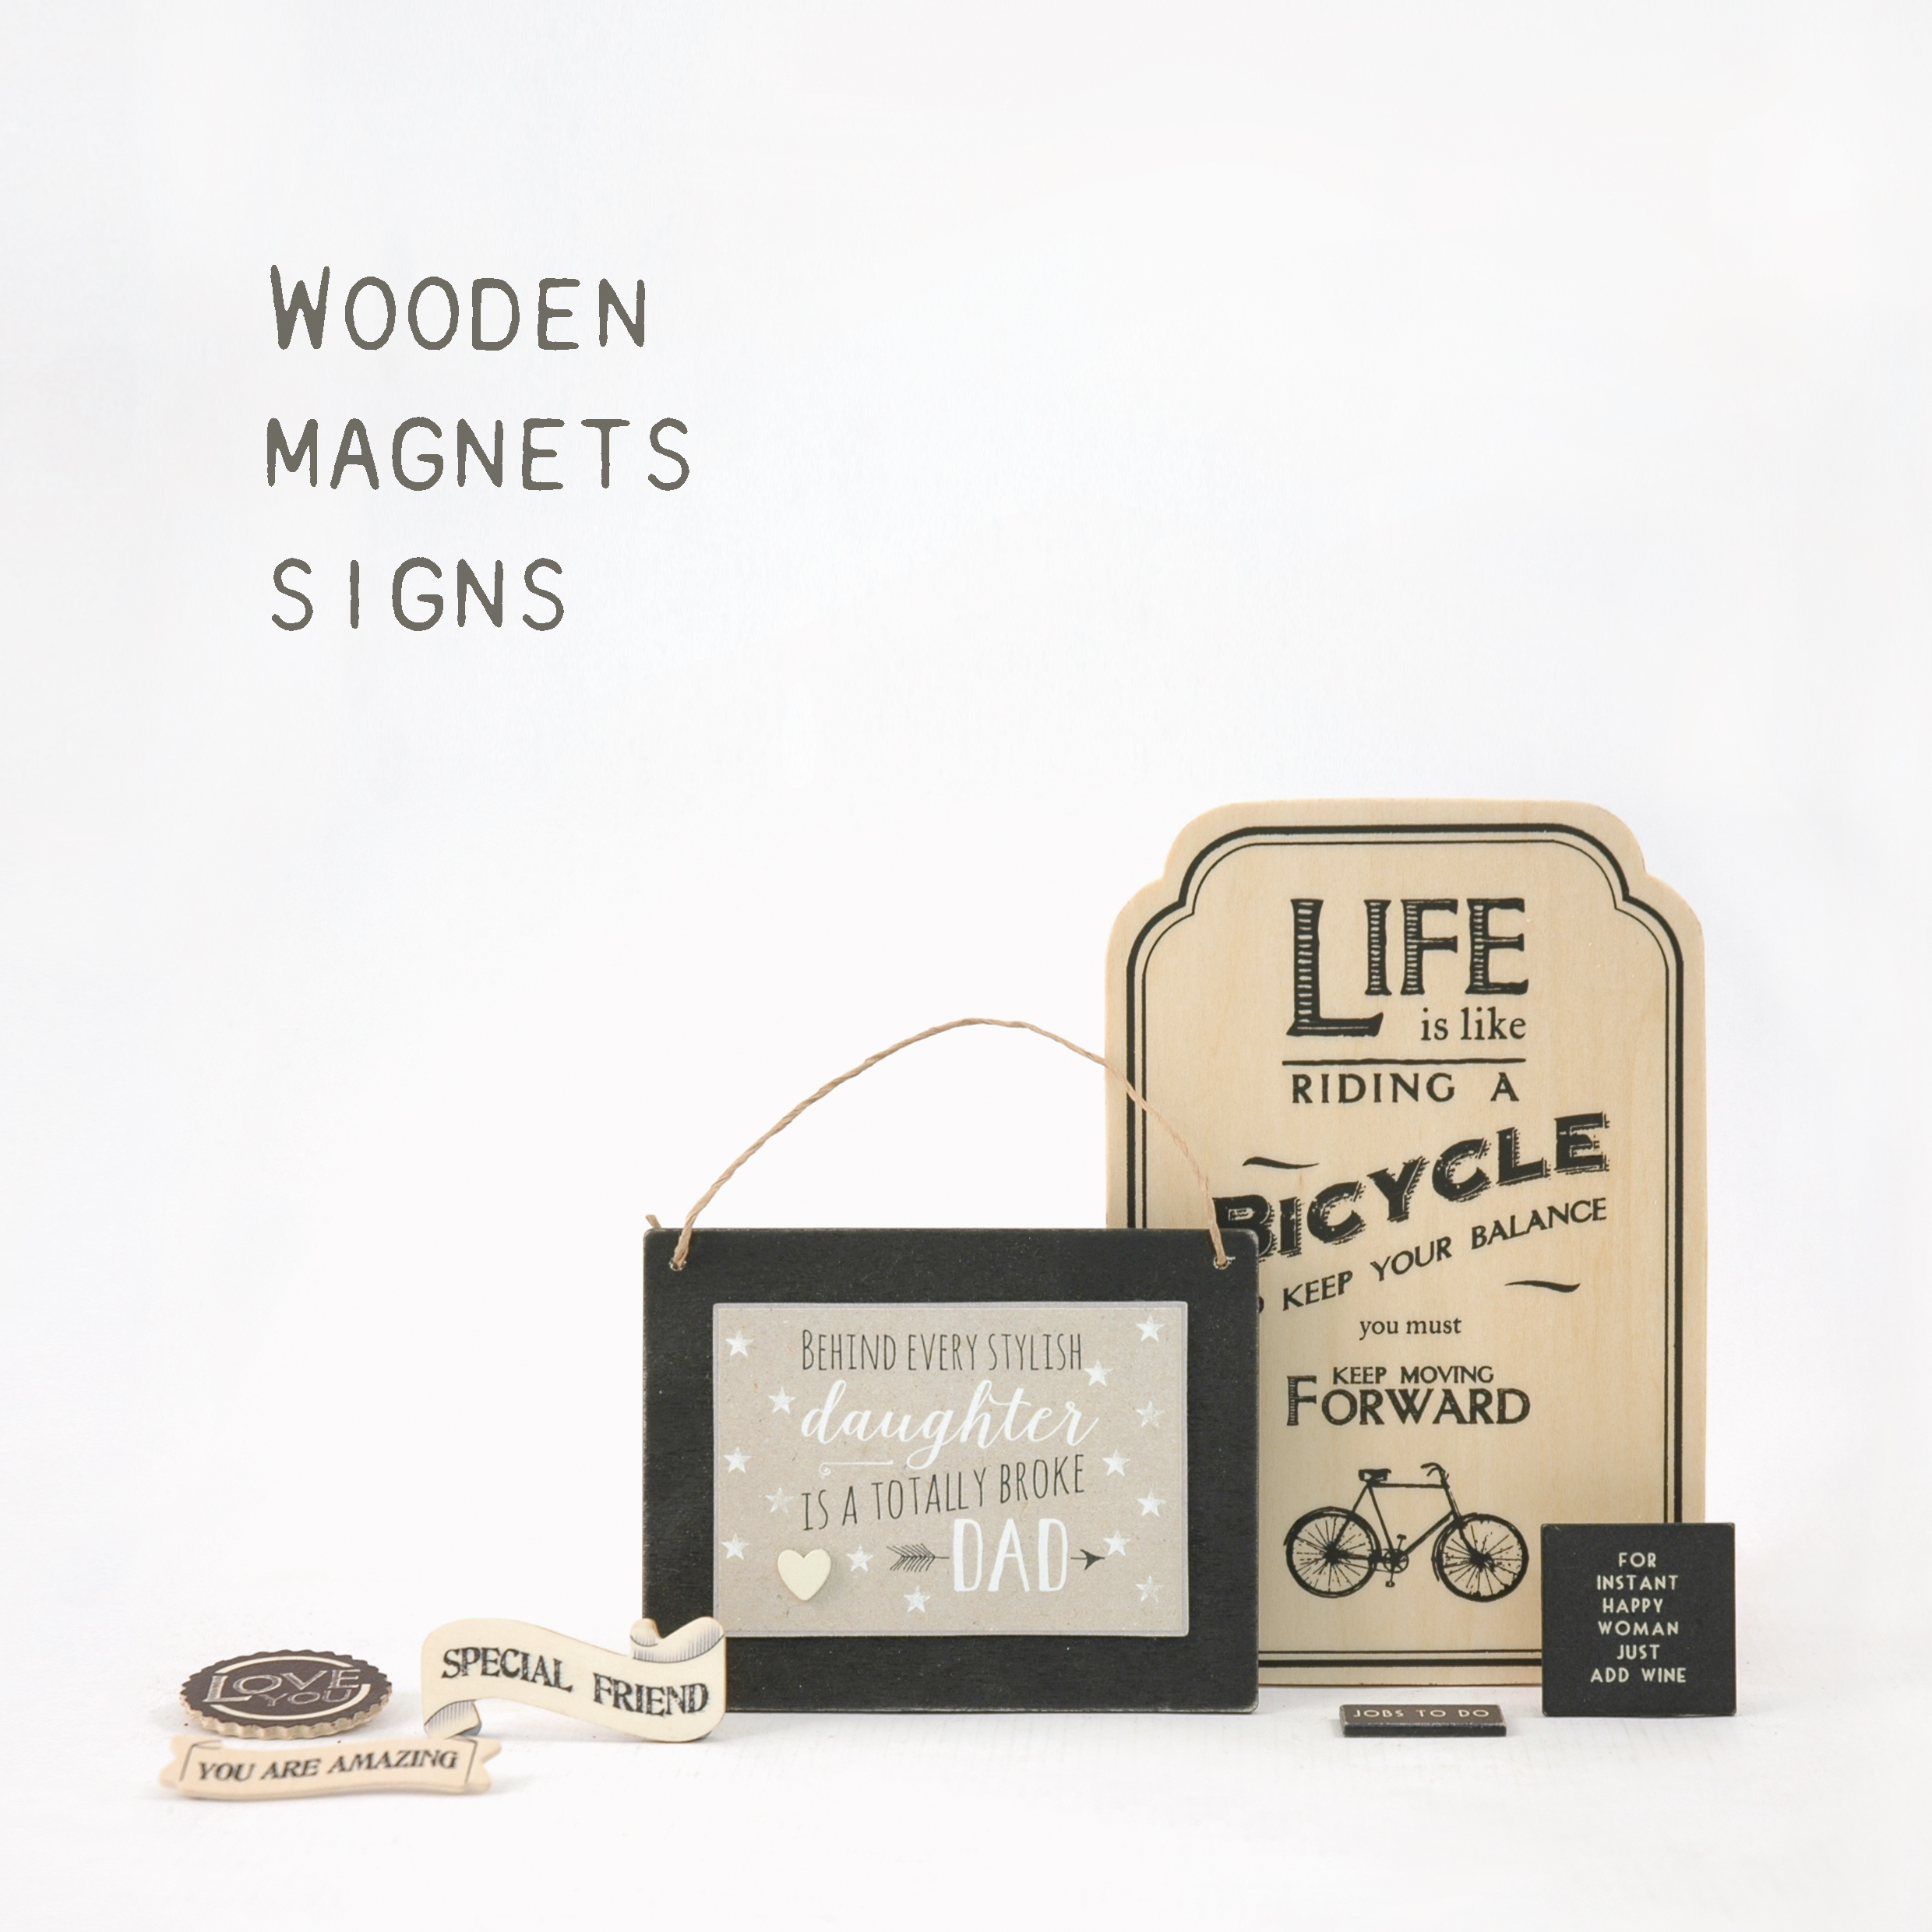 Signs & Magnets